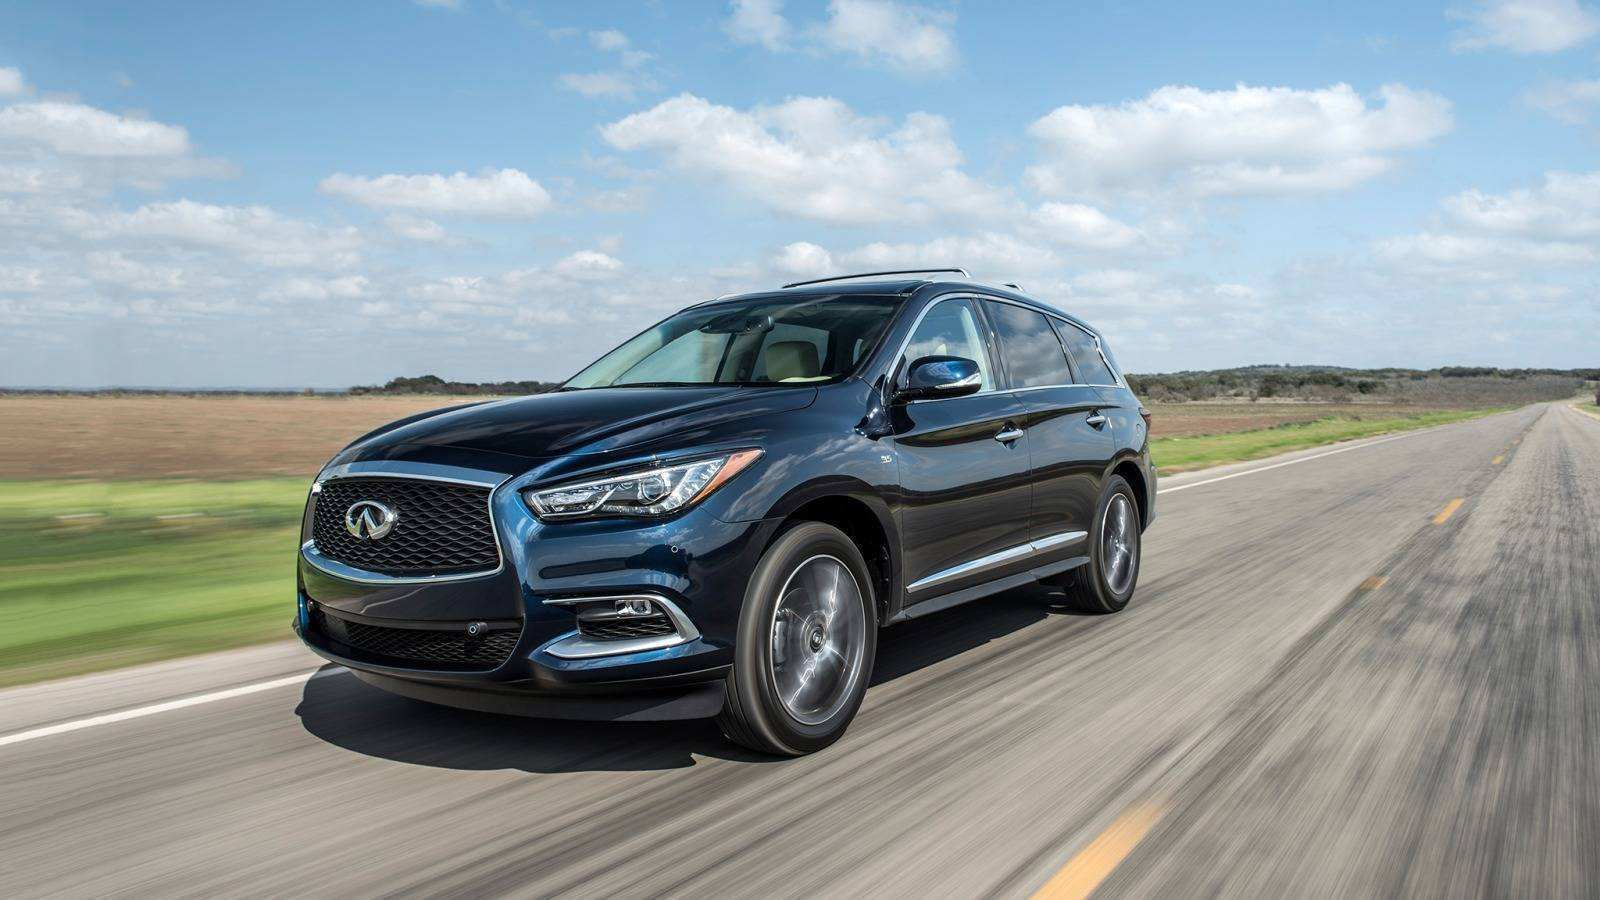 74 The Best Infiniti 2019 Qx60 First Drive Spy Shoot for Best Infiniti 2019 Qx60 First Drive